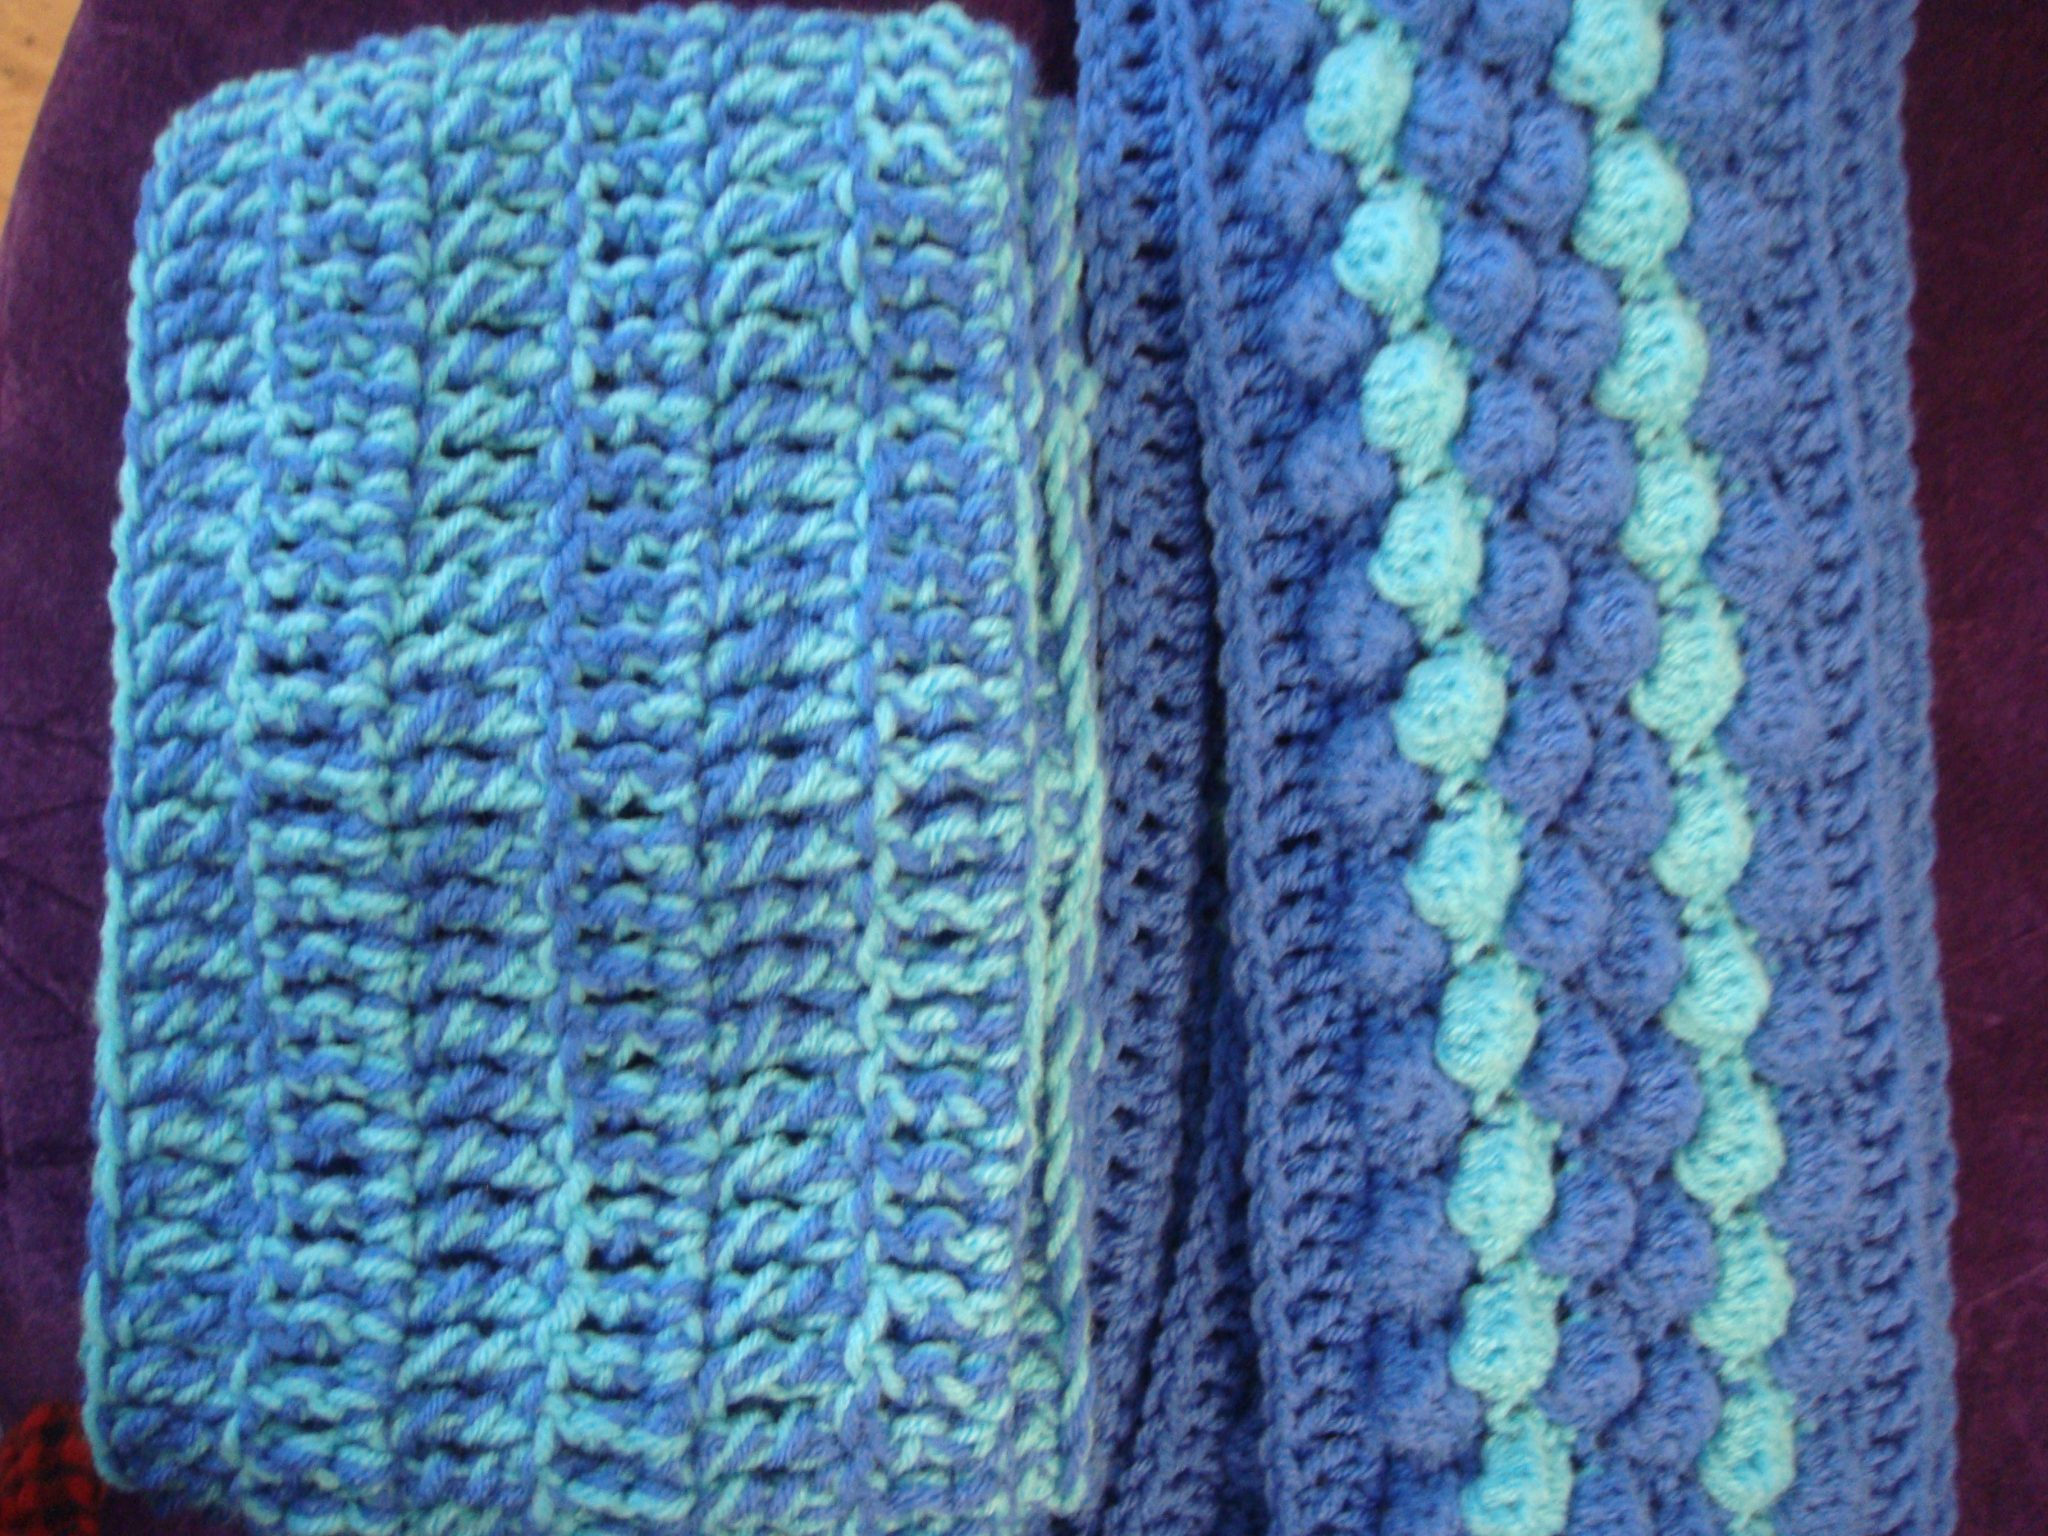 Crochet Patterns To Donate : These crochet scarves were made for 2011 Scarves for Special Olympics